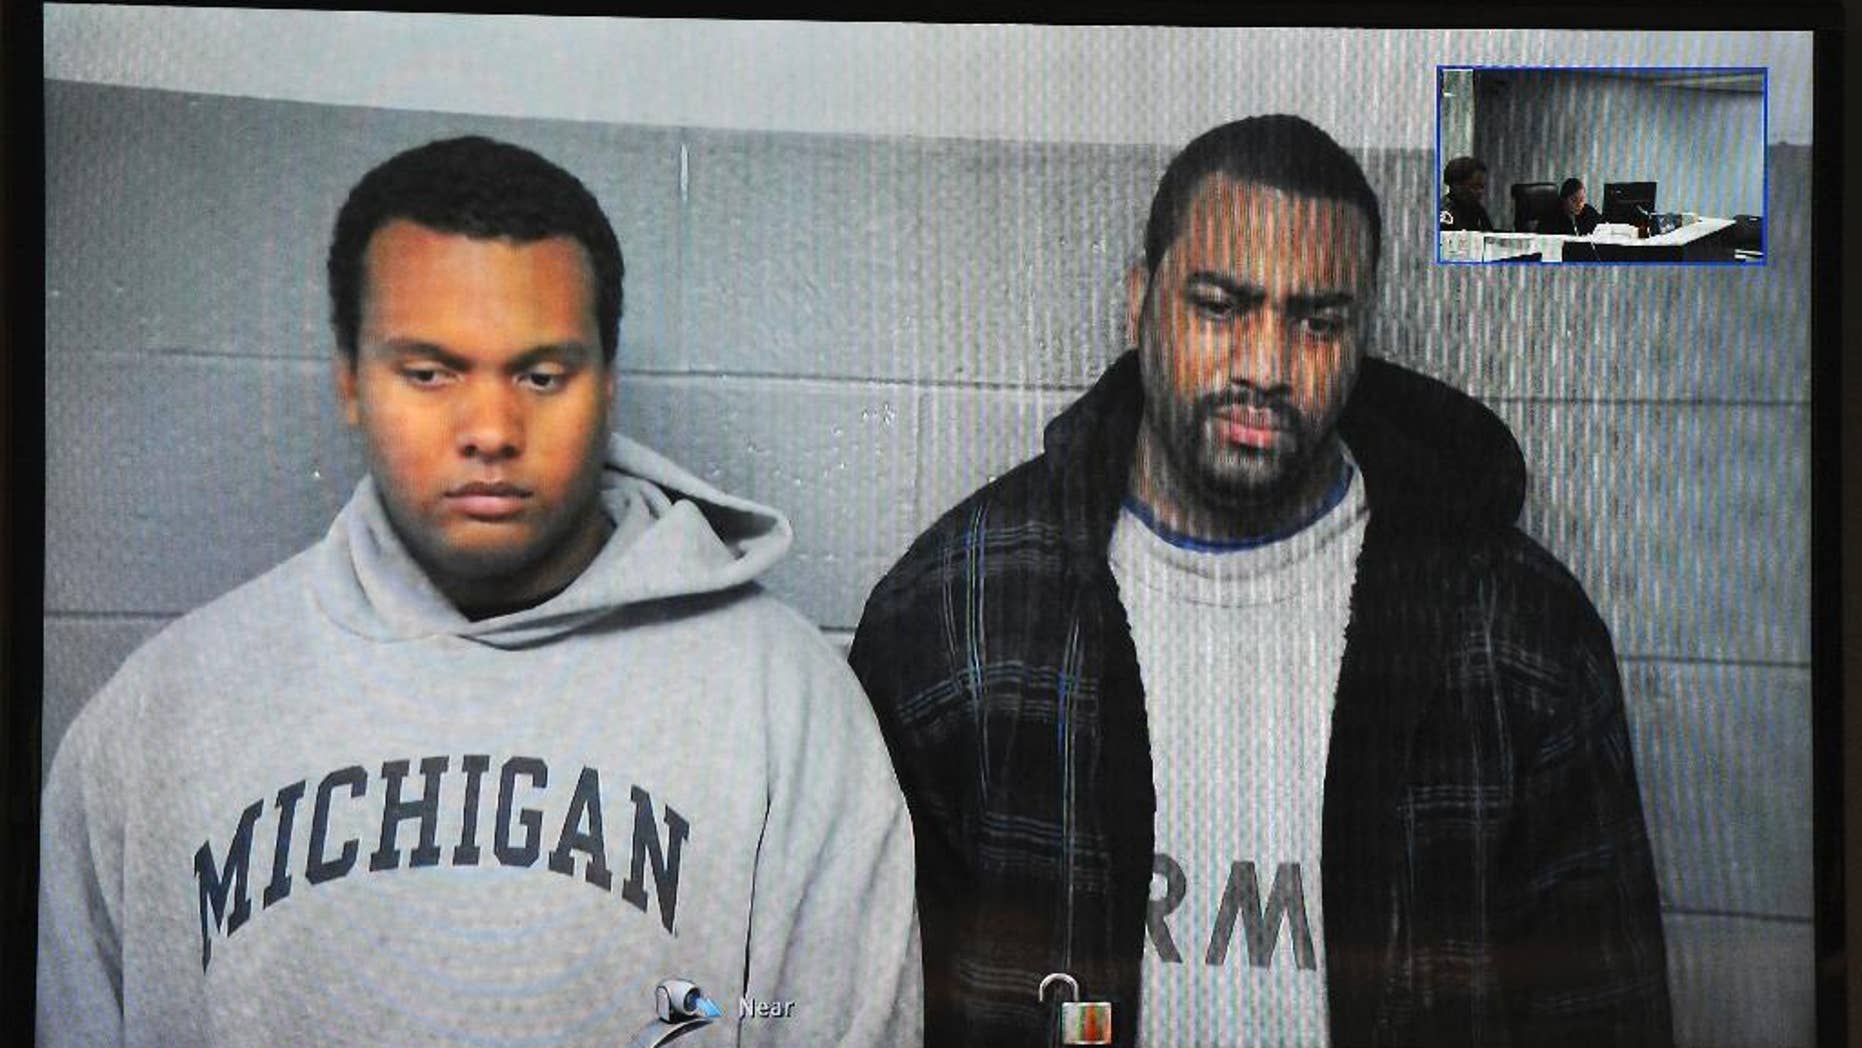 FILE- in this file image from Oct. 27, 2015, taken from video provided by the 36th District Court, Detroit police officers Charles Lynem, 28, left, and Chancellor Searcy, 31, are arraigned via video conference in Detroit. Detroit Police Chief James Craig says the two members of an elite police unit can return to work after being acquitted of stealing money from people they stopped on the street. A jury acquitted Officers Lynem and Searcy on Jan. 11, 2017. They had been suspended without pay. (Wayne County District Court/Detroit News via AP)